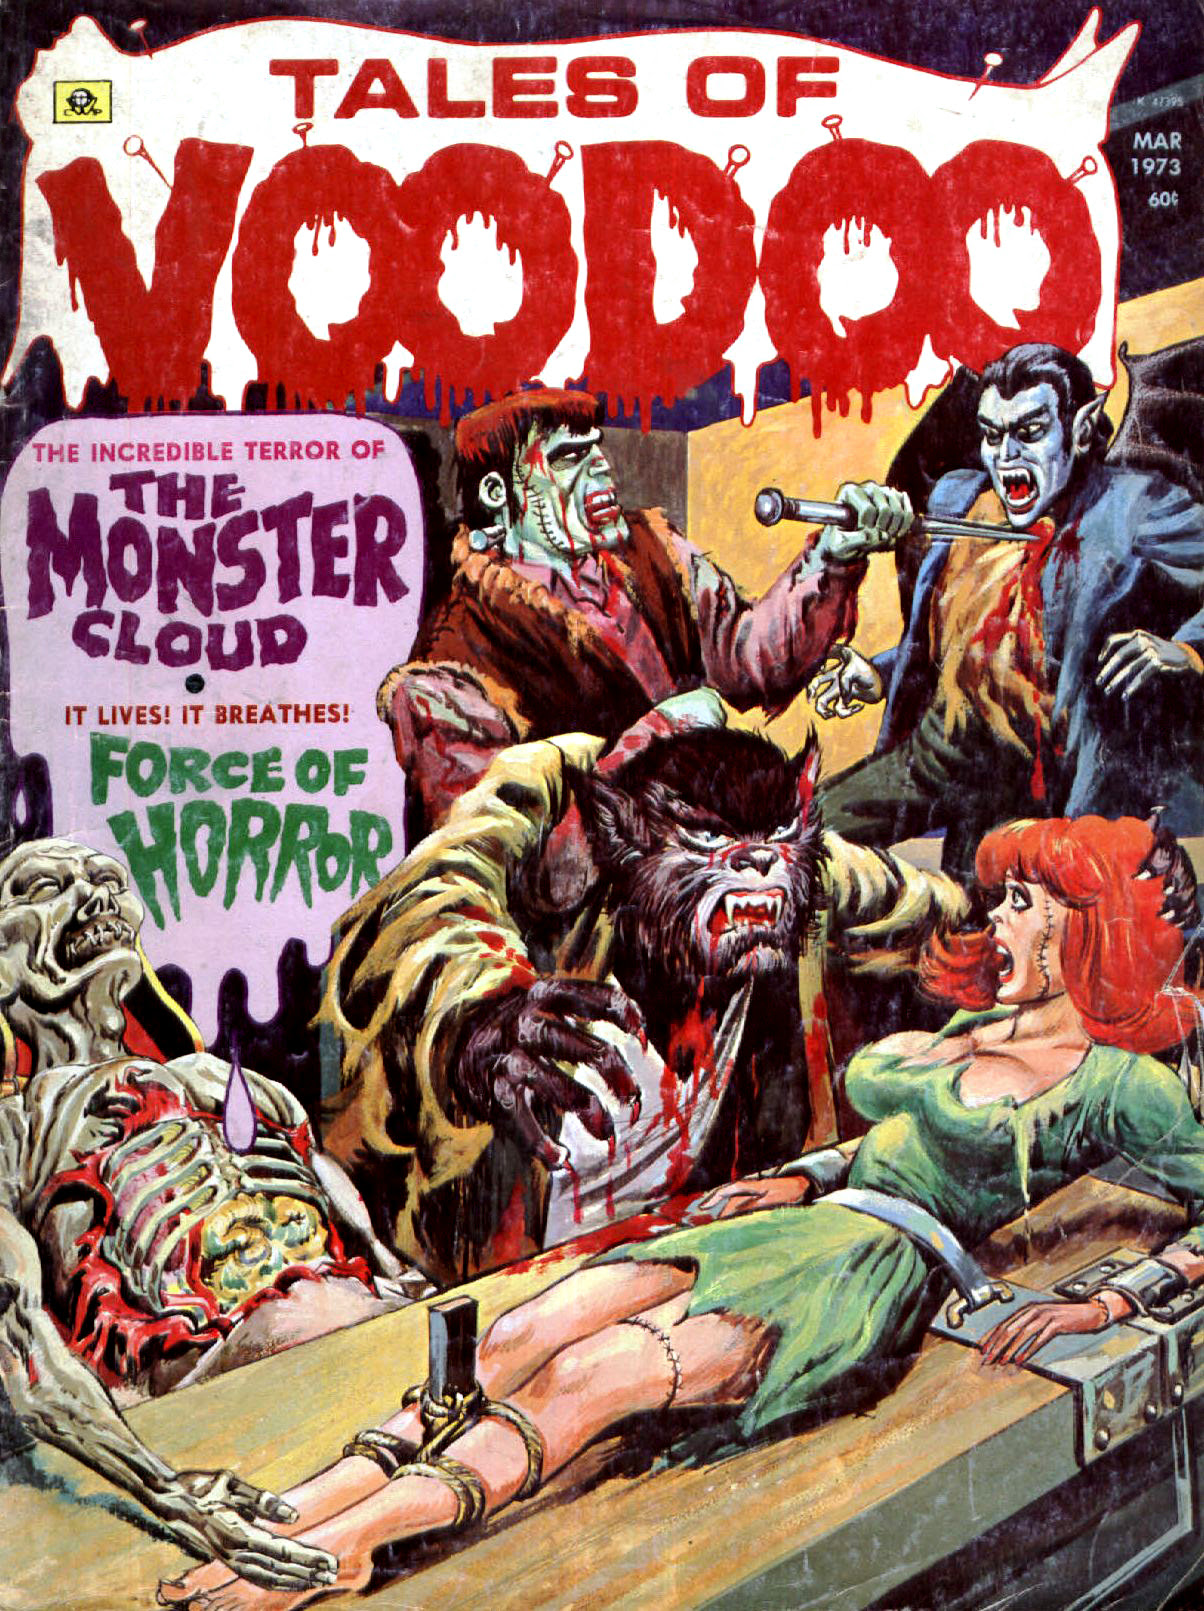 Tales of Voodoo Vol. 6 #2 (Eerie Publications 1973)